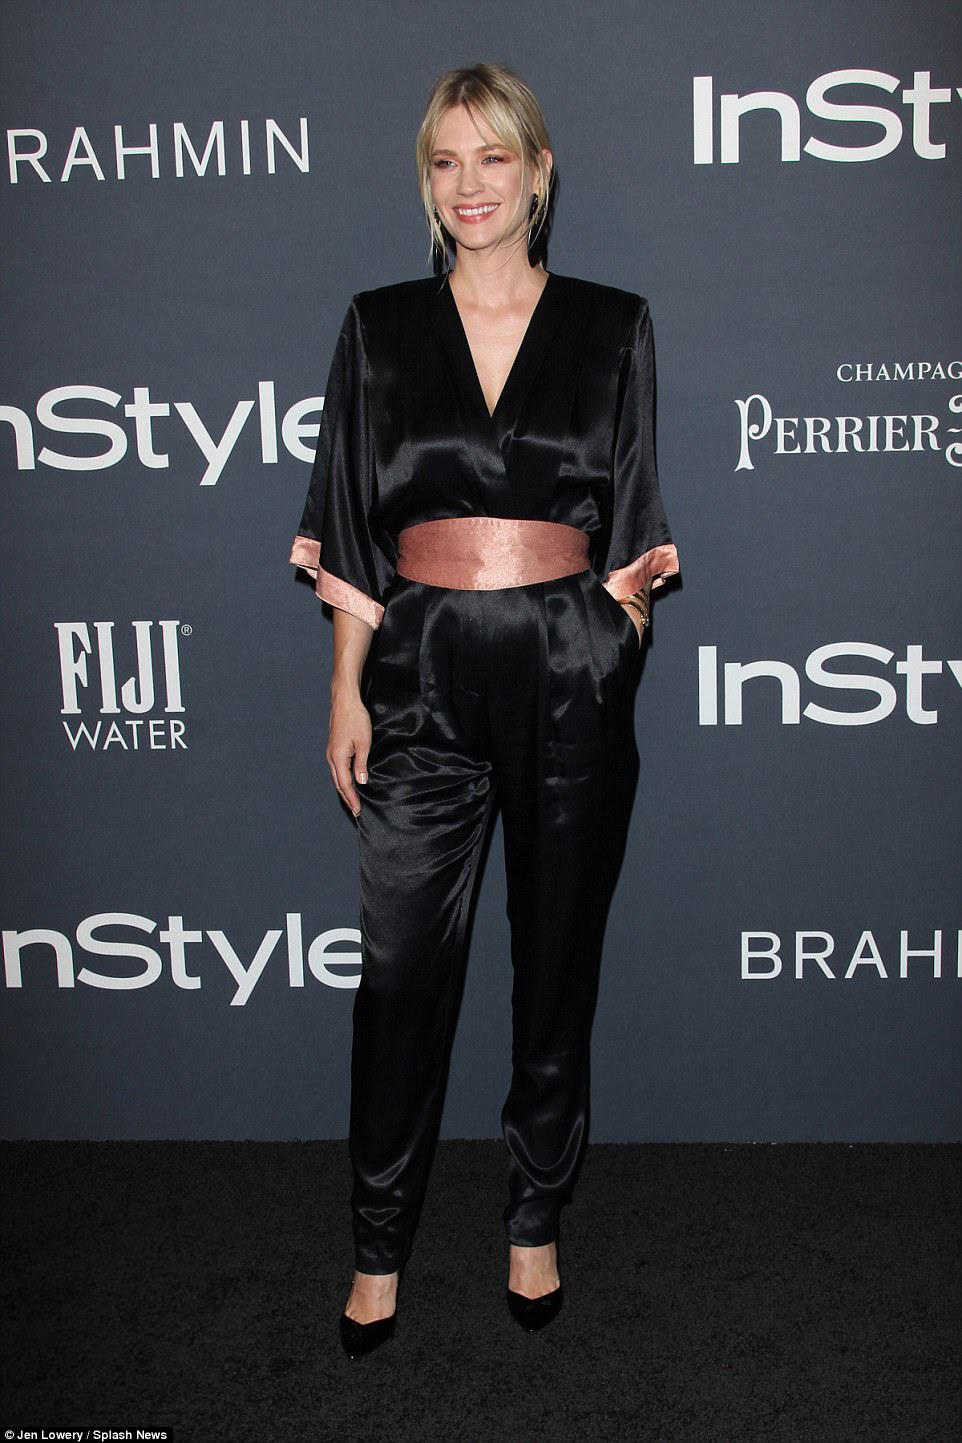 Blonde beauty: January Jones, 39, was sleekly styled in a black satin jumpsuit with a pink band at the waist and pink cuffs on the half sleeves. She added a pair of black pointed toe heels